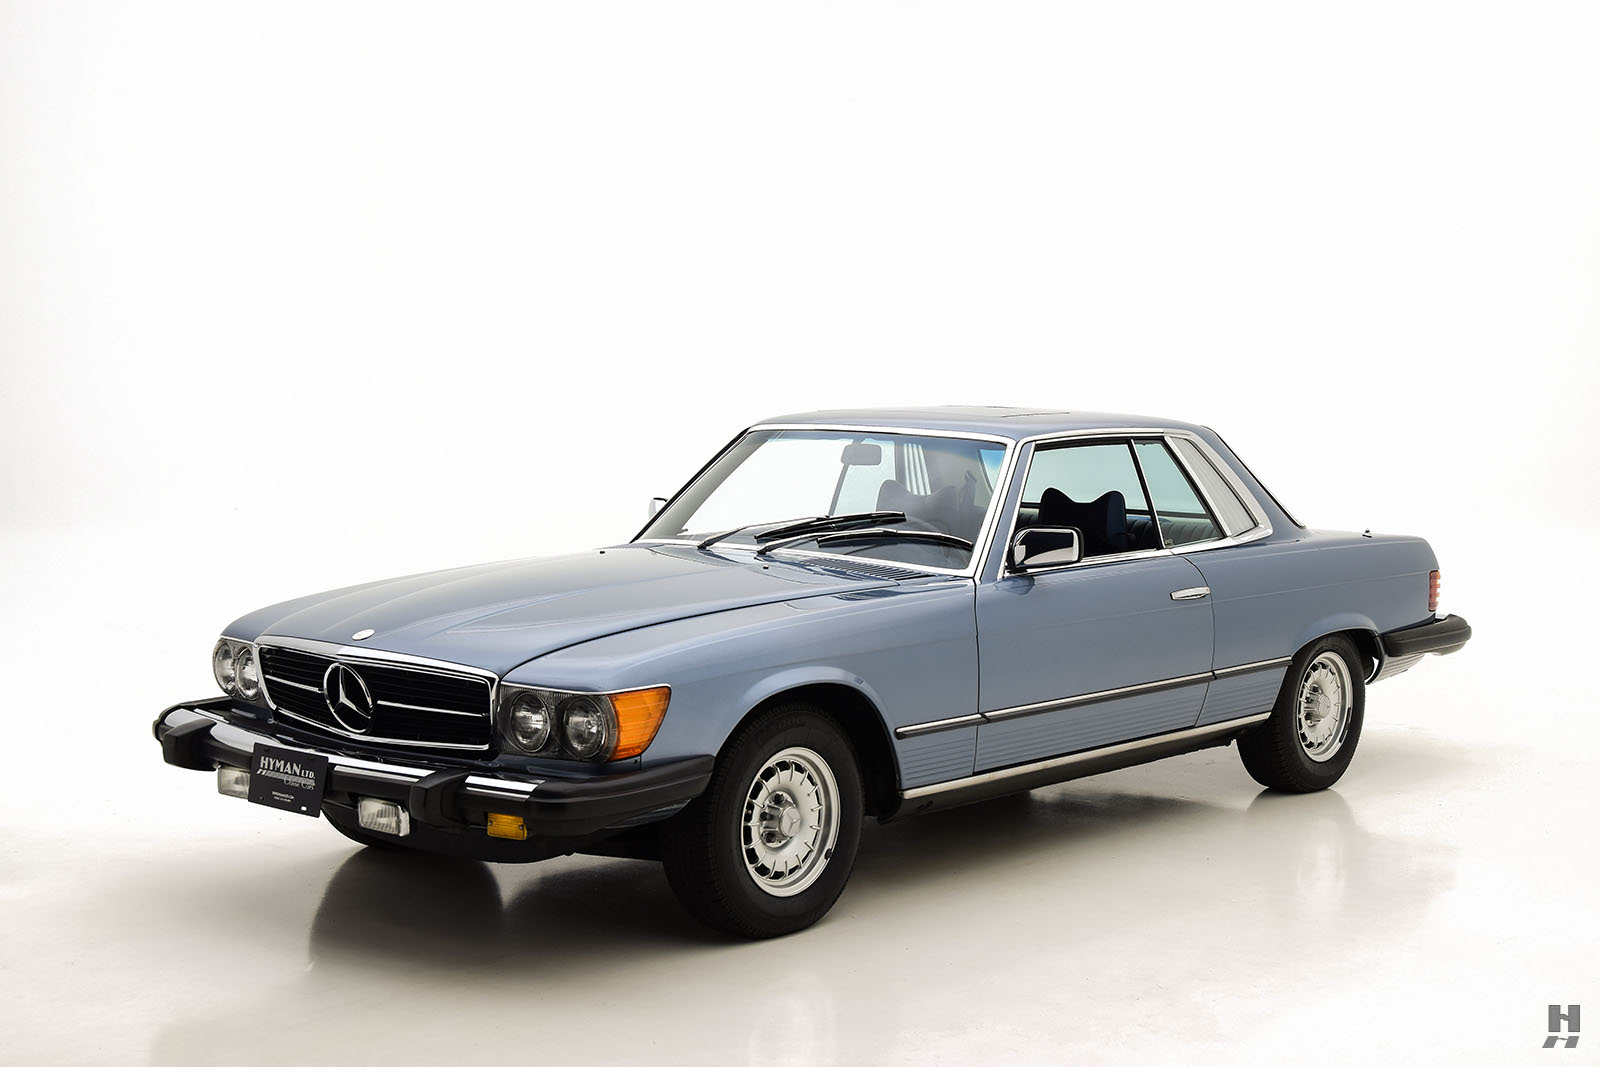 1979 mercedes benz 450slc coupe for sale buy classic car for Buy a mercedes benz